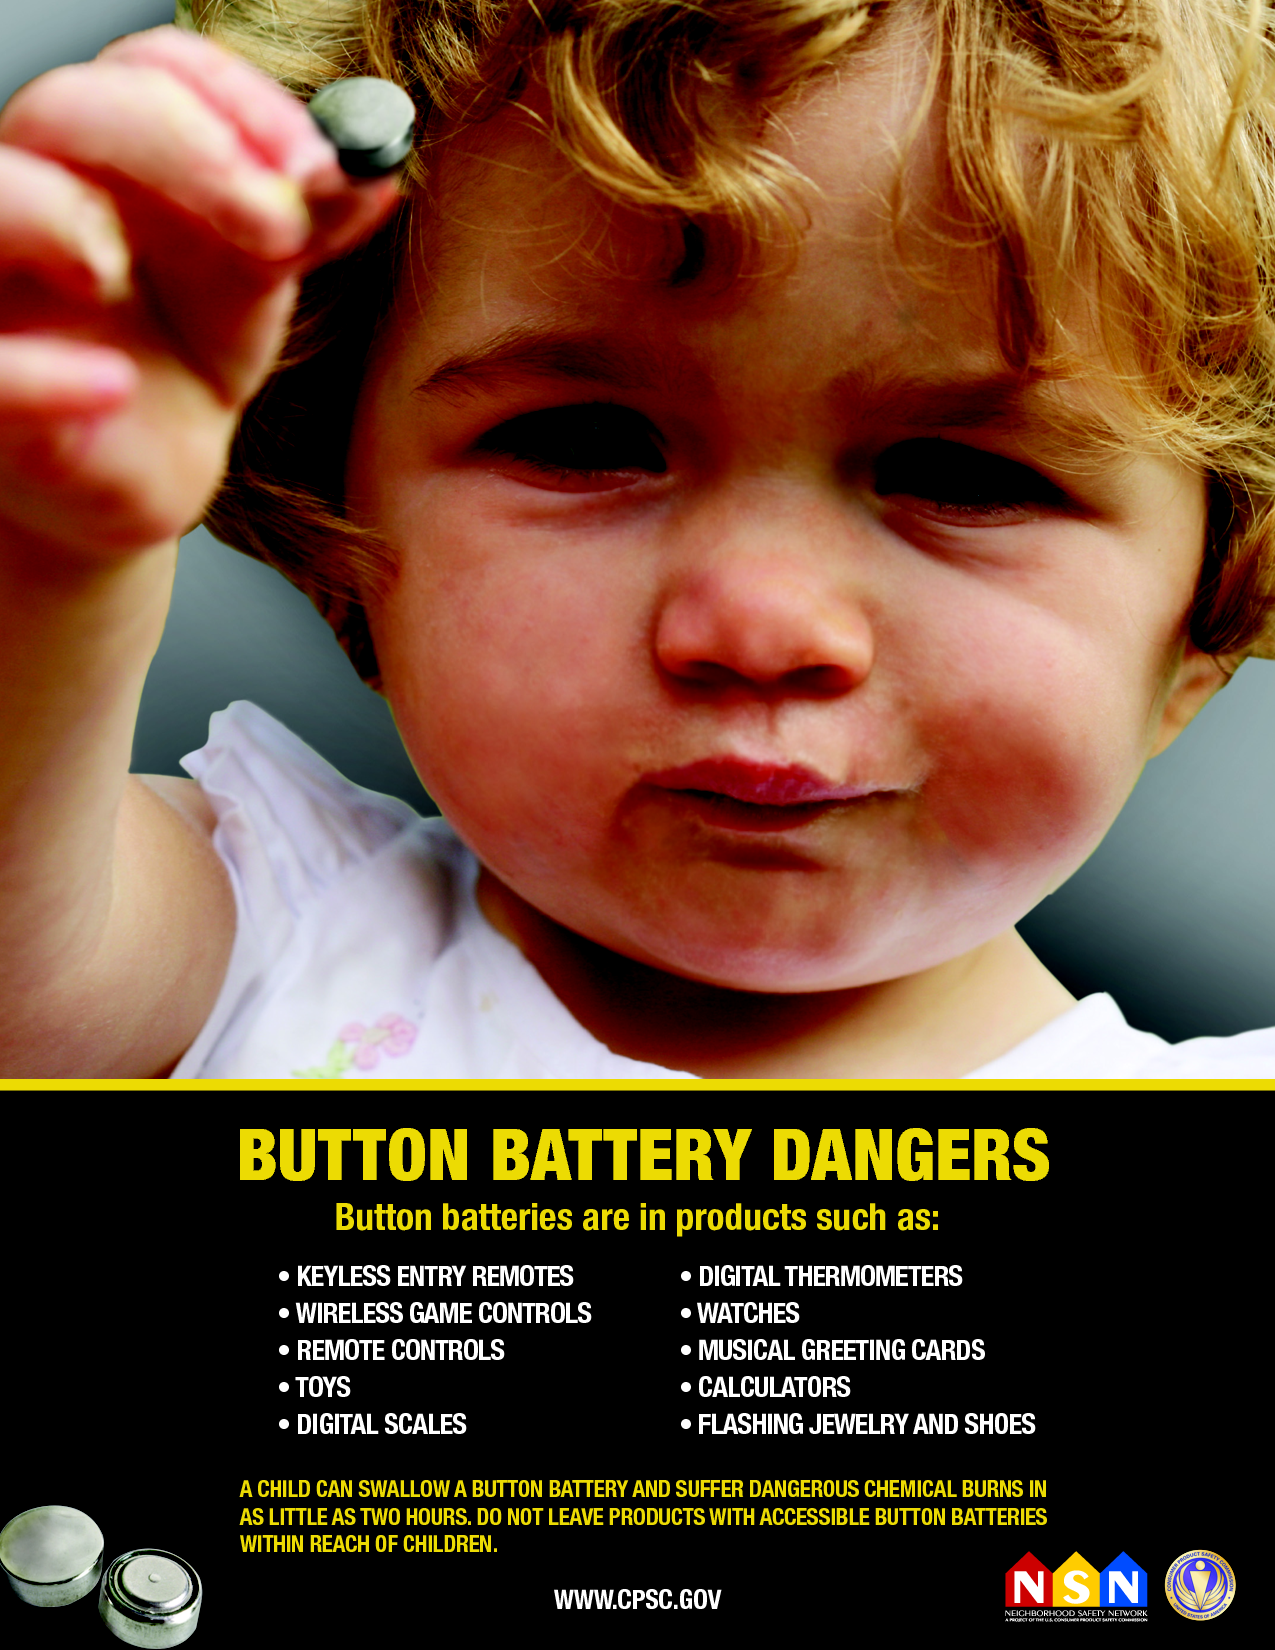 Button Battery Safety A child can swallow a button